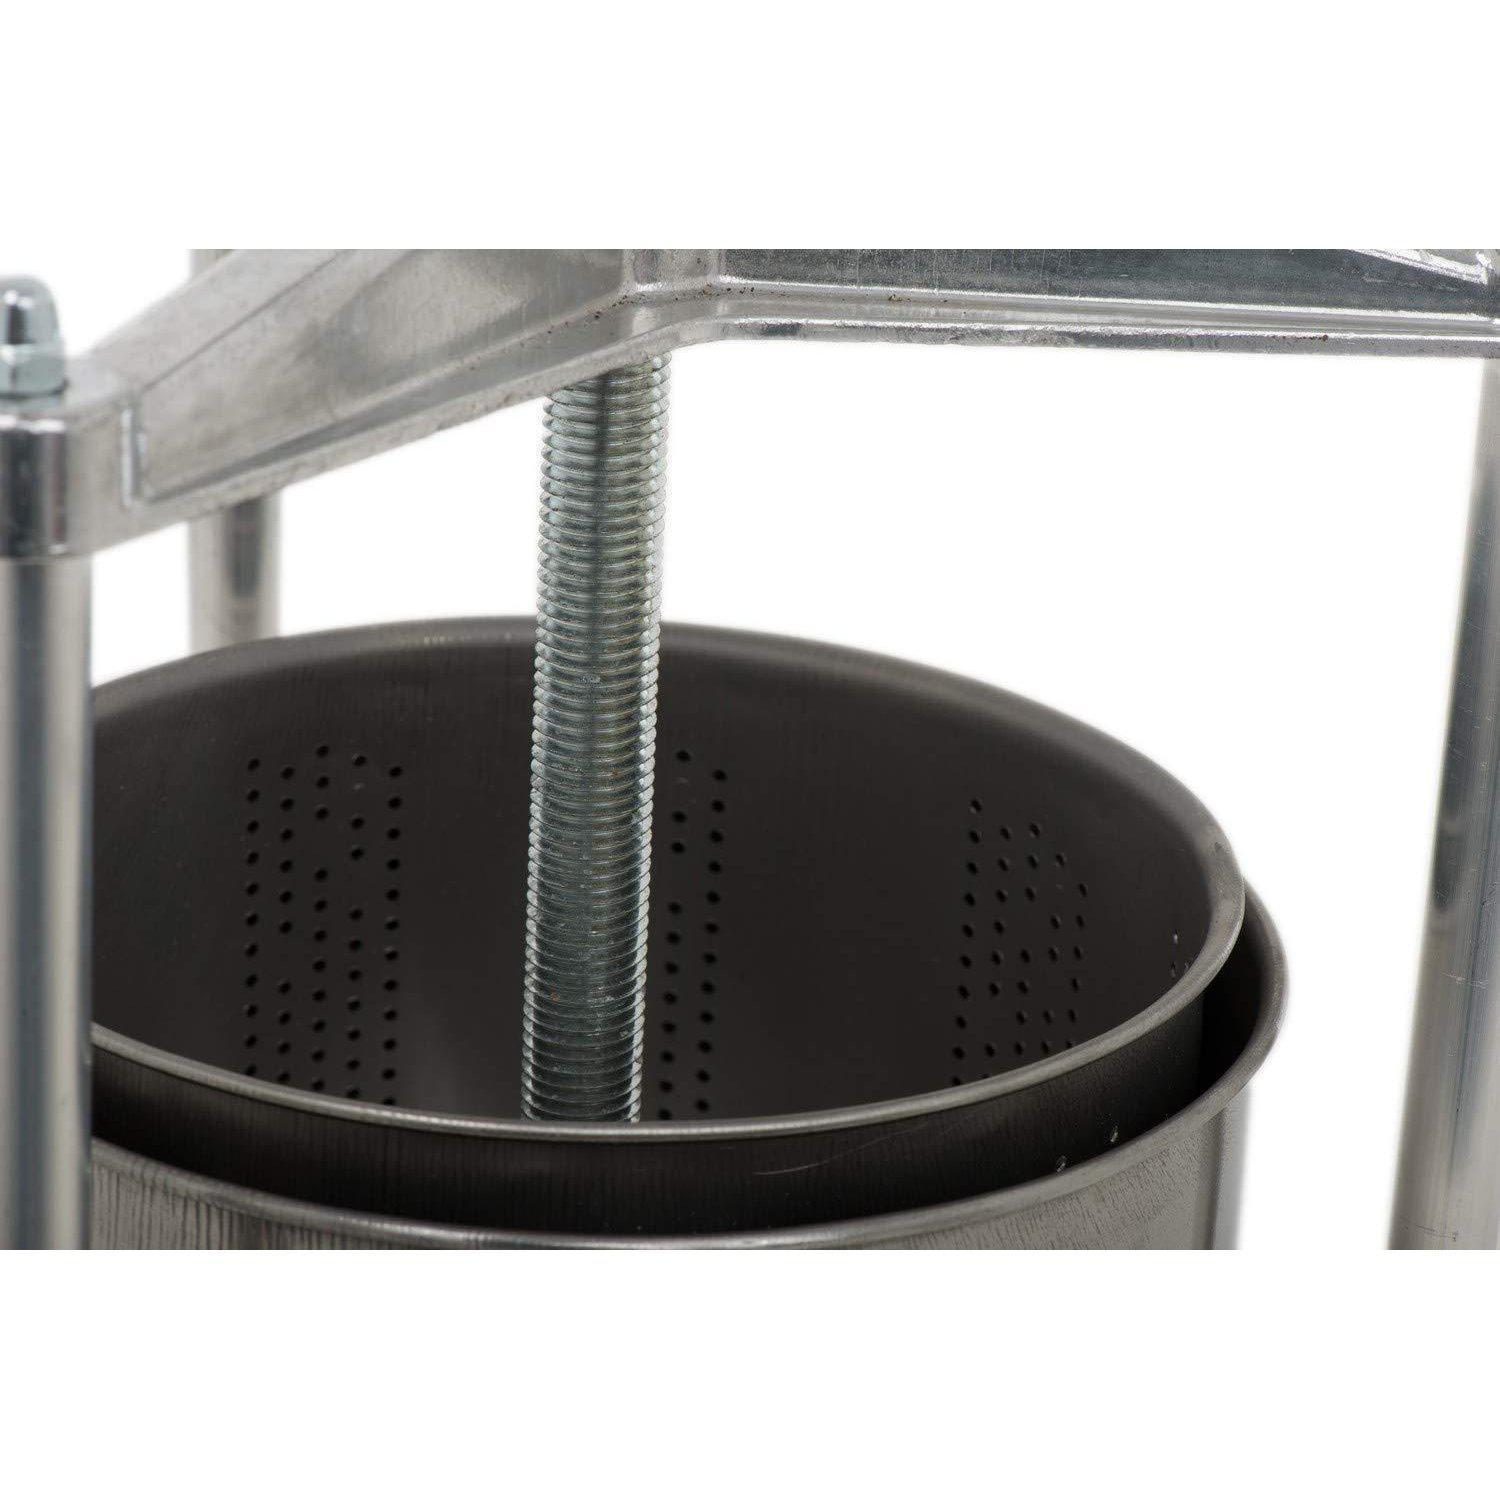 Small Professional Torchietto Interior Perforated Stainless Steel Basket